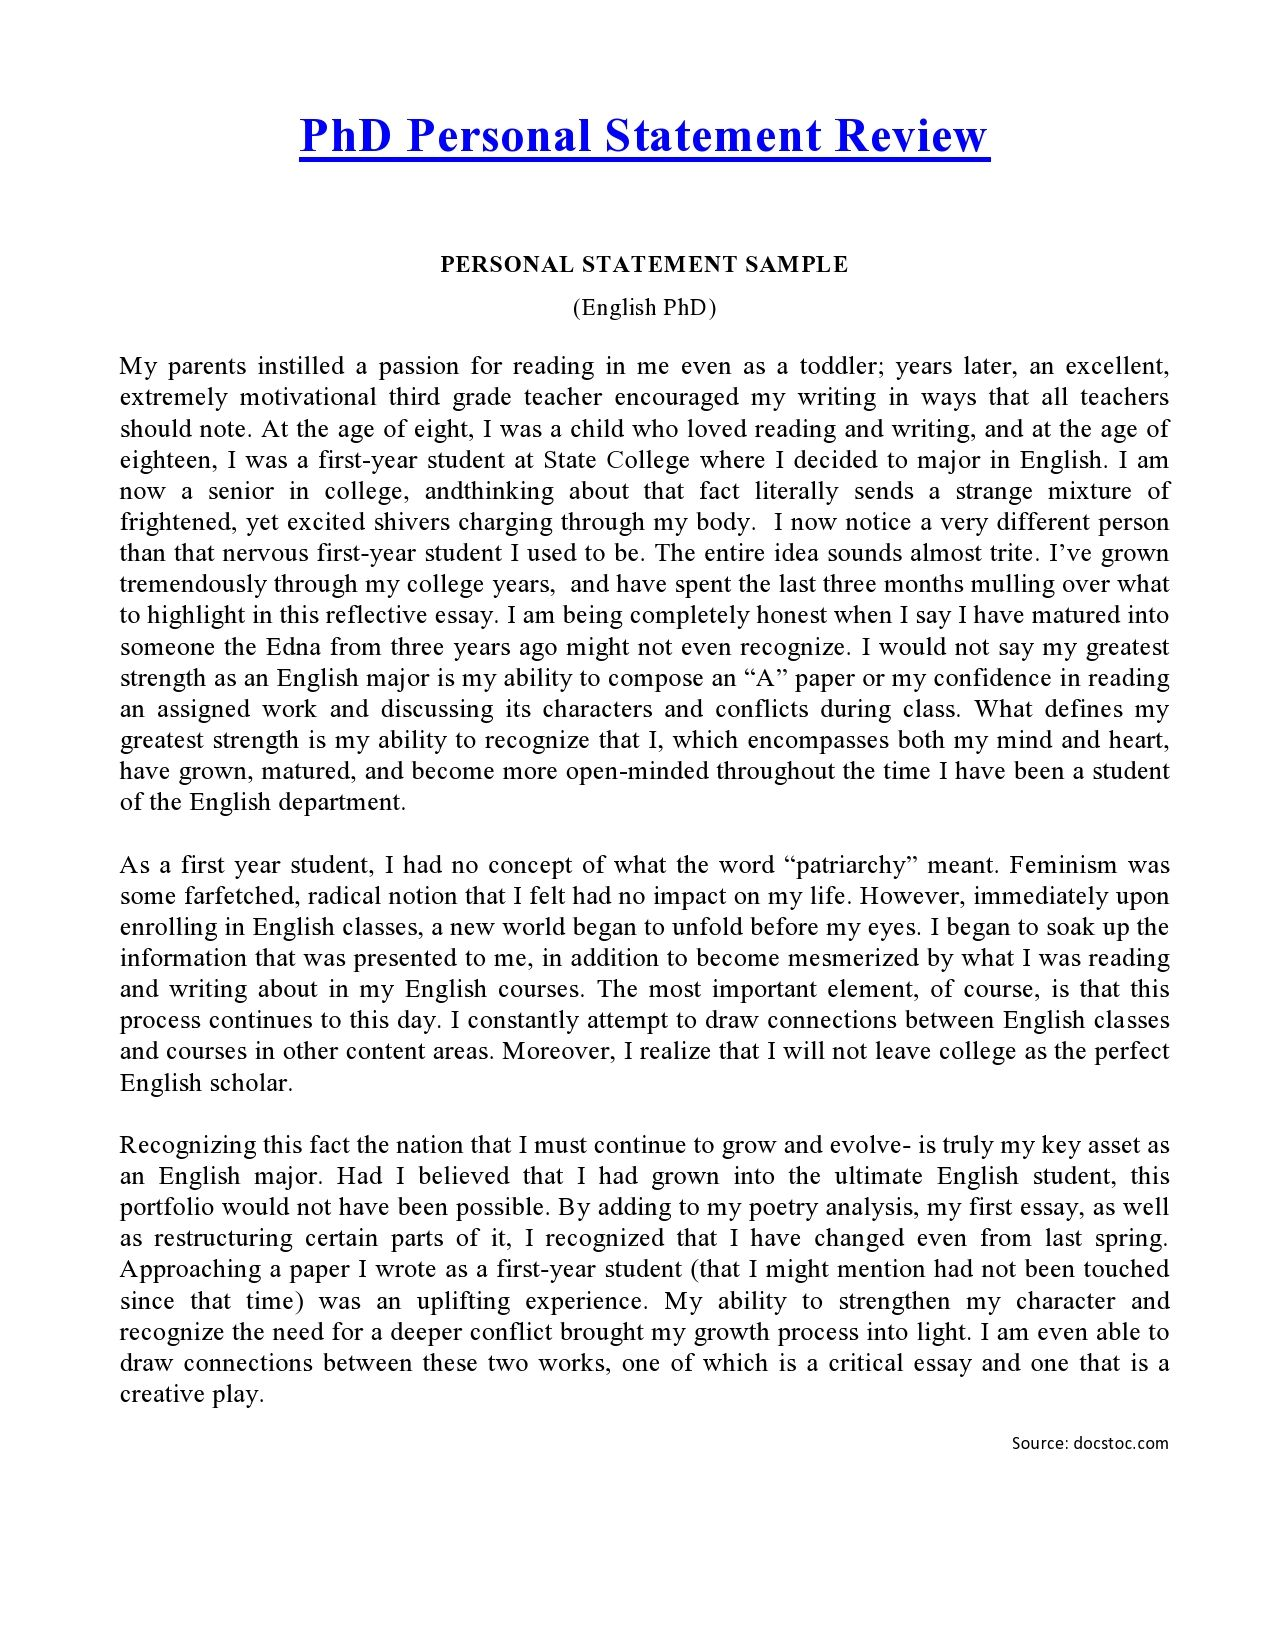 personal statement phd | personal statement | Pinterest | Math ...